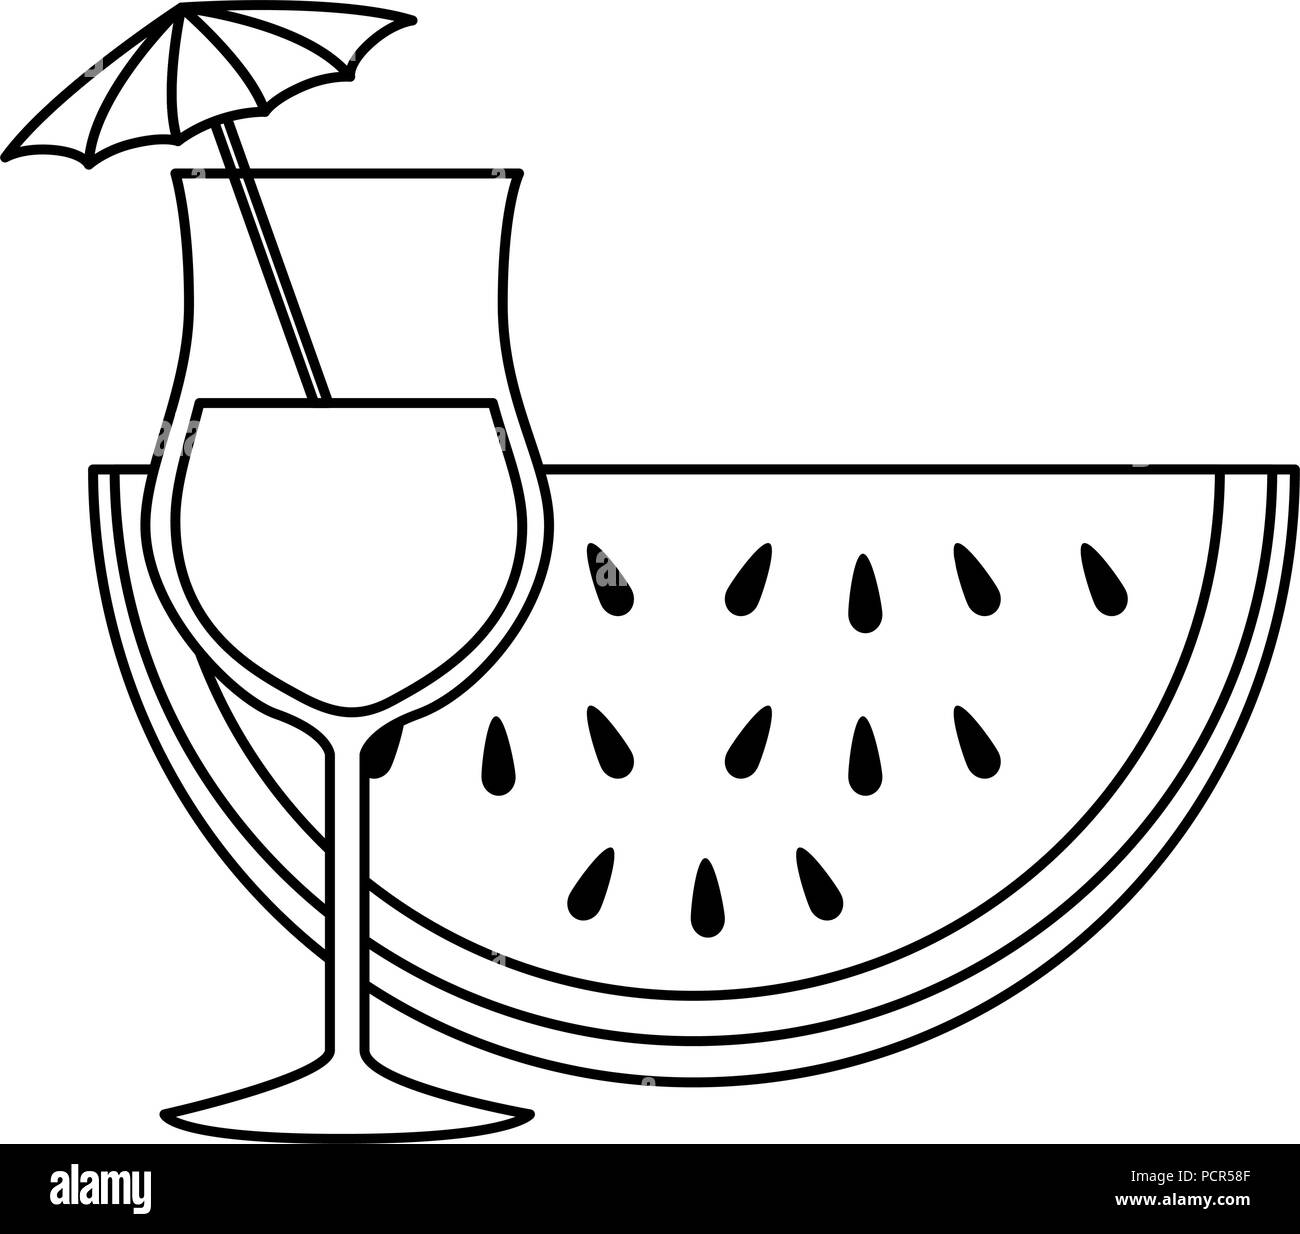 Watermelon half black and white stock photos images alamy